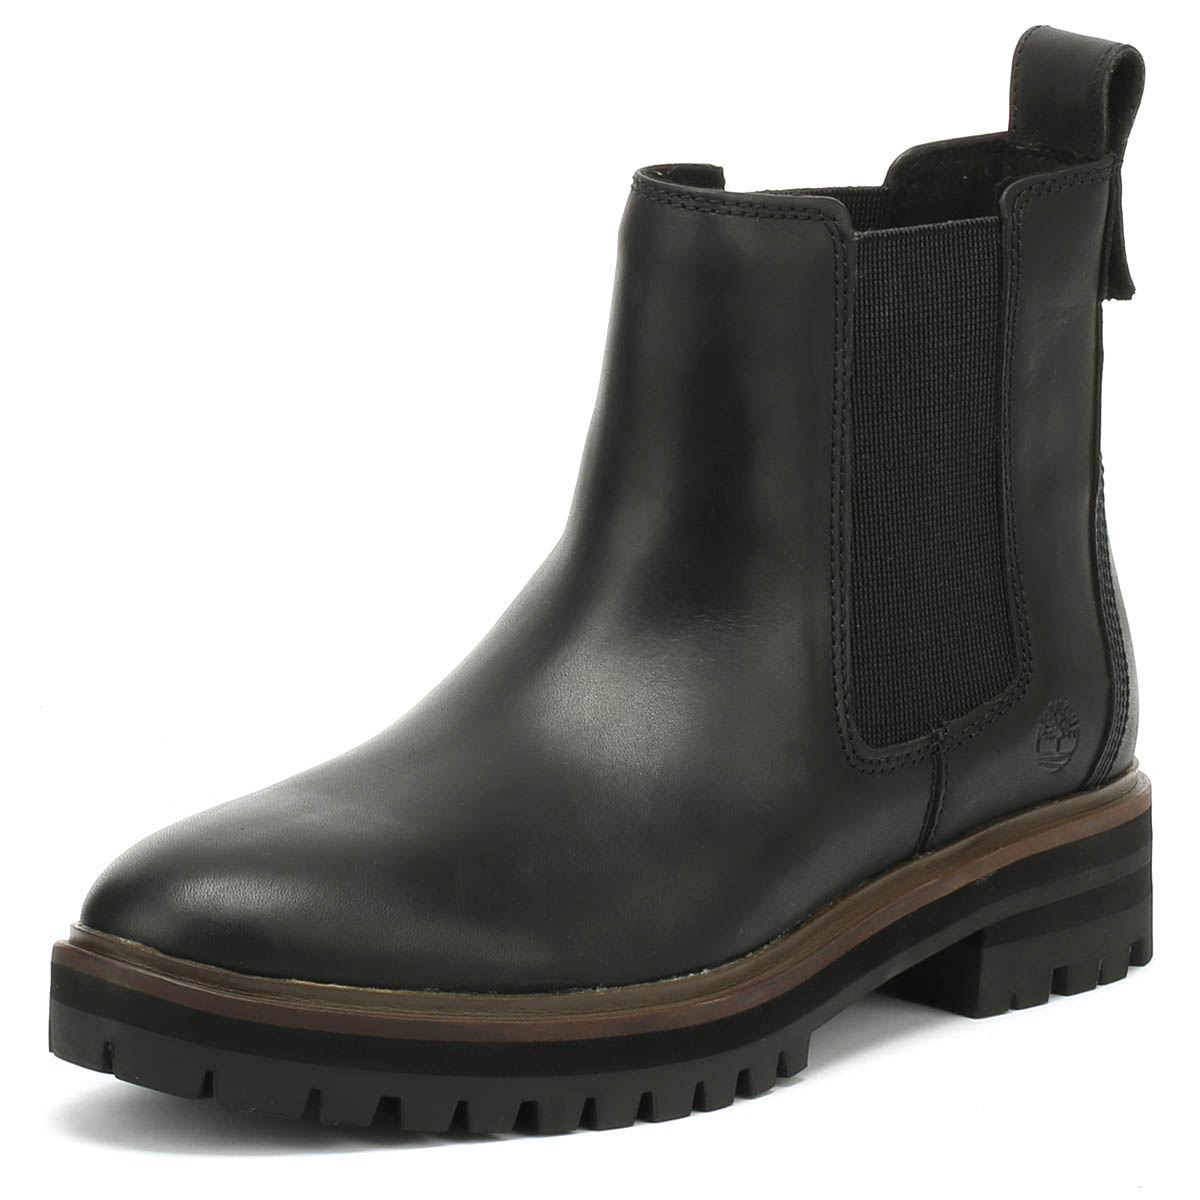 Acquista A Buon Mercato Timberland Womens Boots Black London Square Chelsea Ladies Warm Winter Shoes